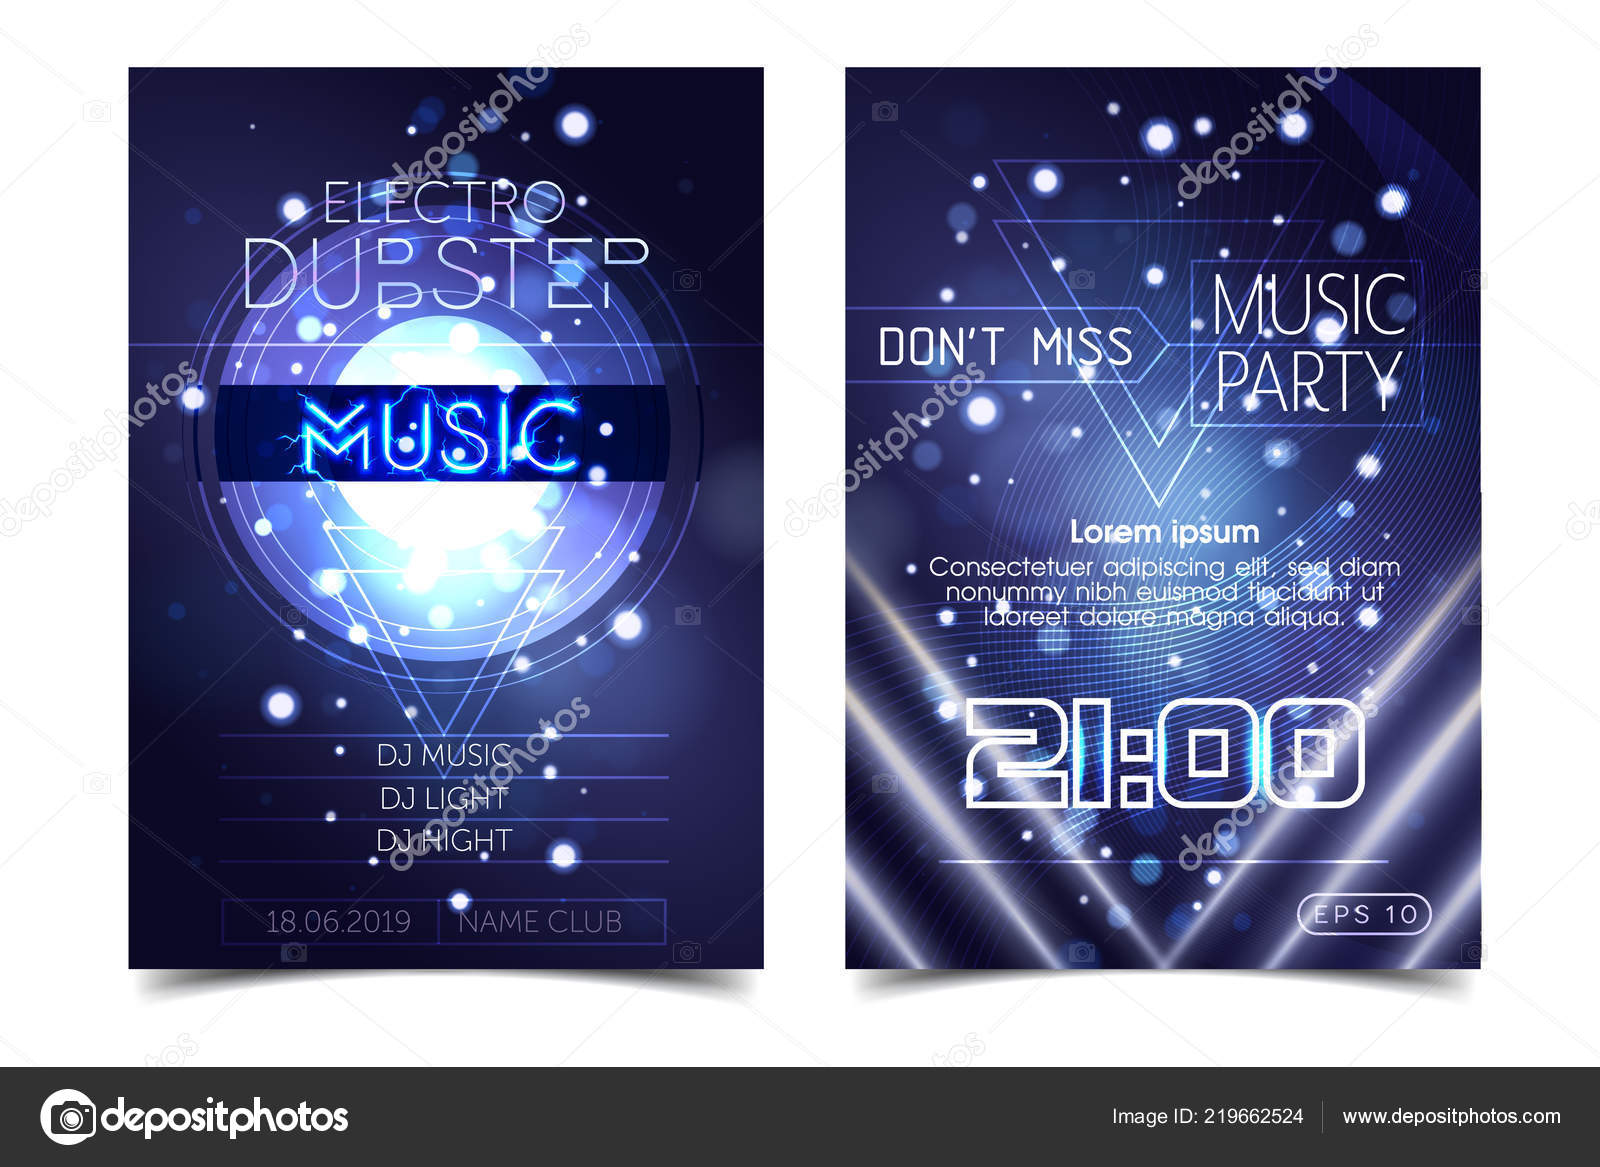 Sound of music party invitations   Electro sound party music